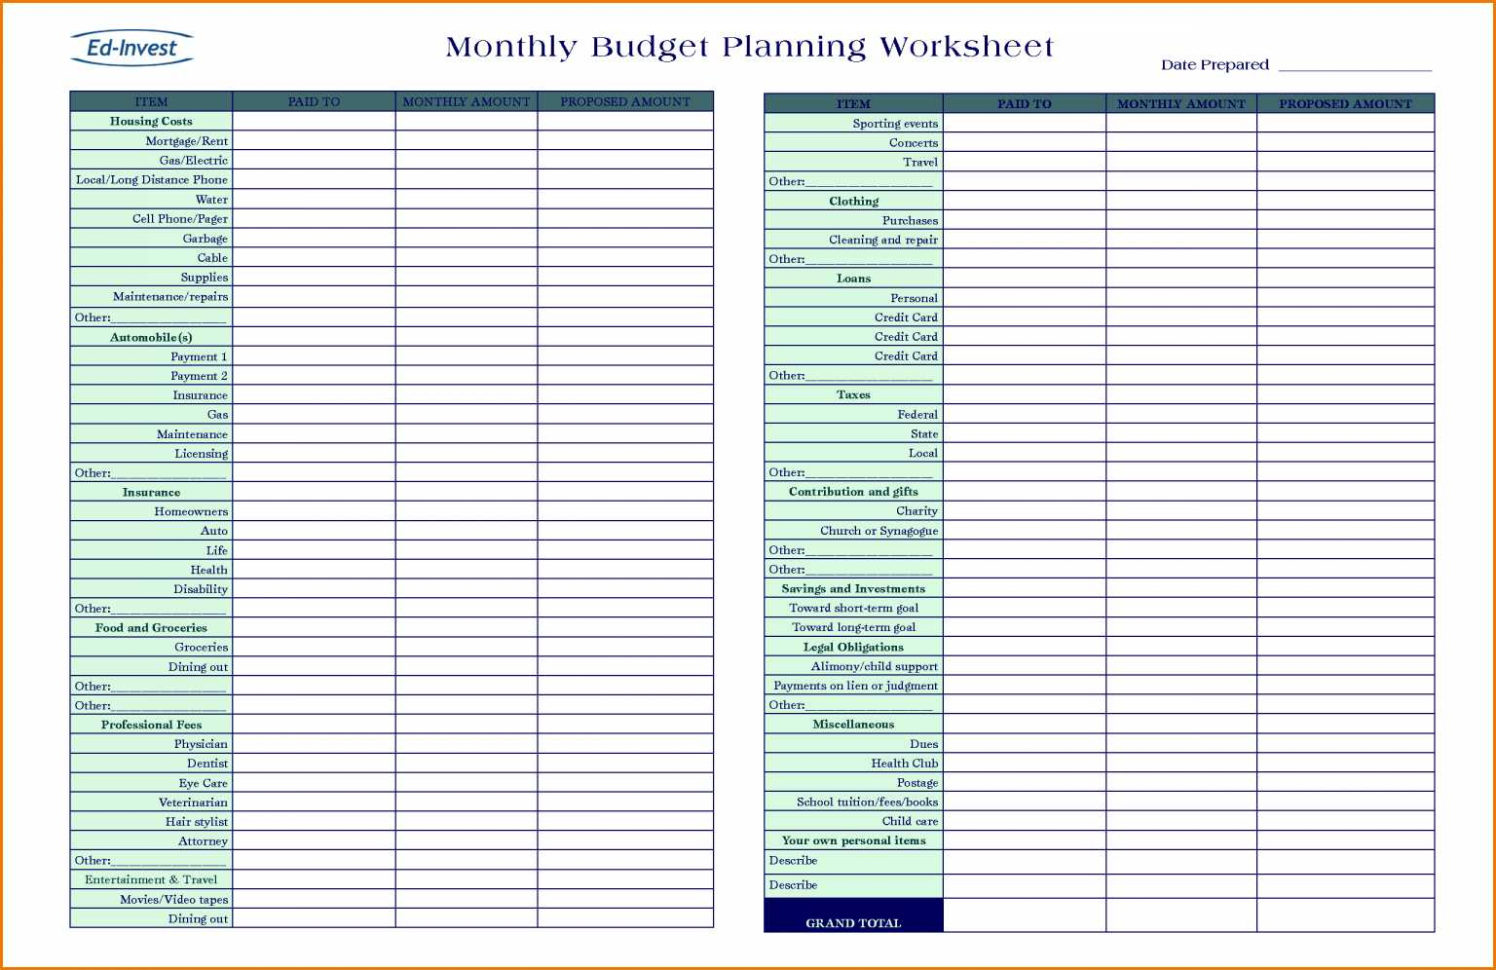 Online Spreadsheet Compare For Retirement Planning Spreadsheet As Online Spreadsheet Compare Excel